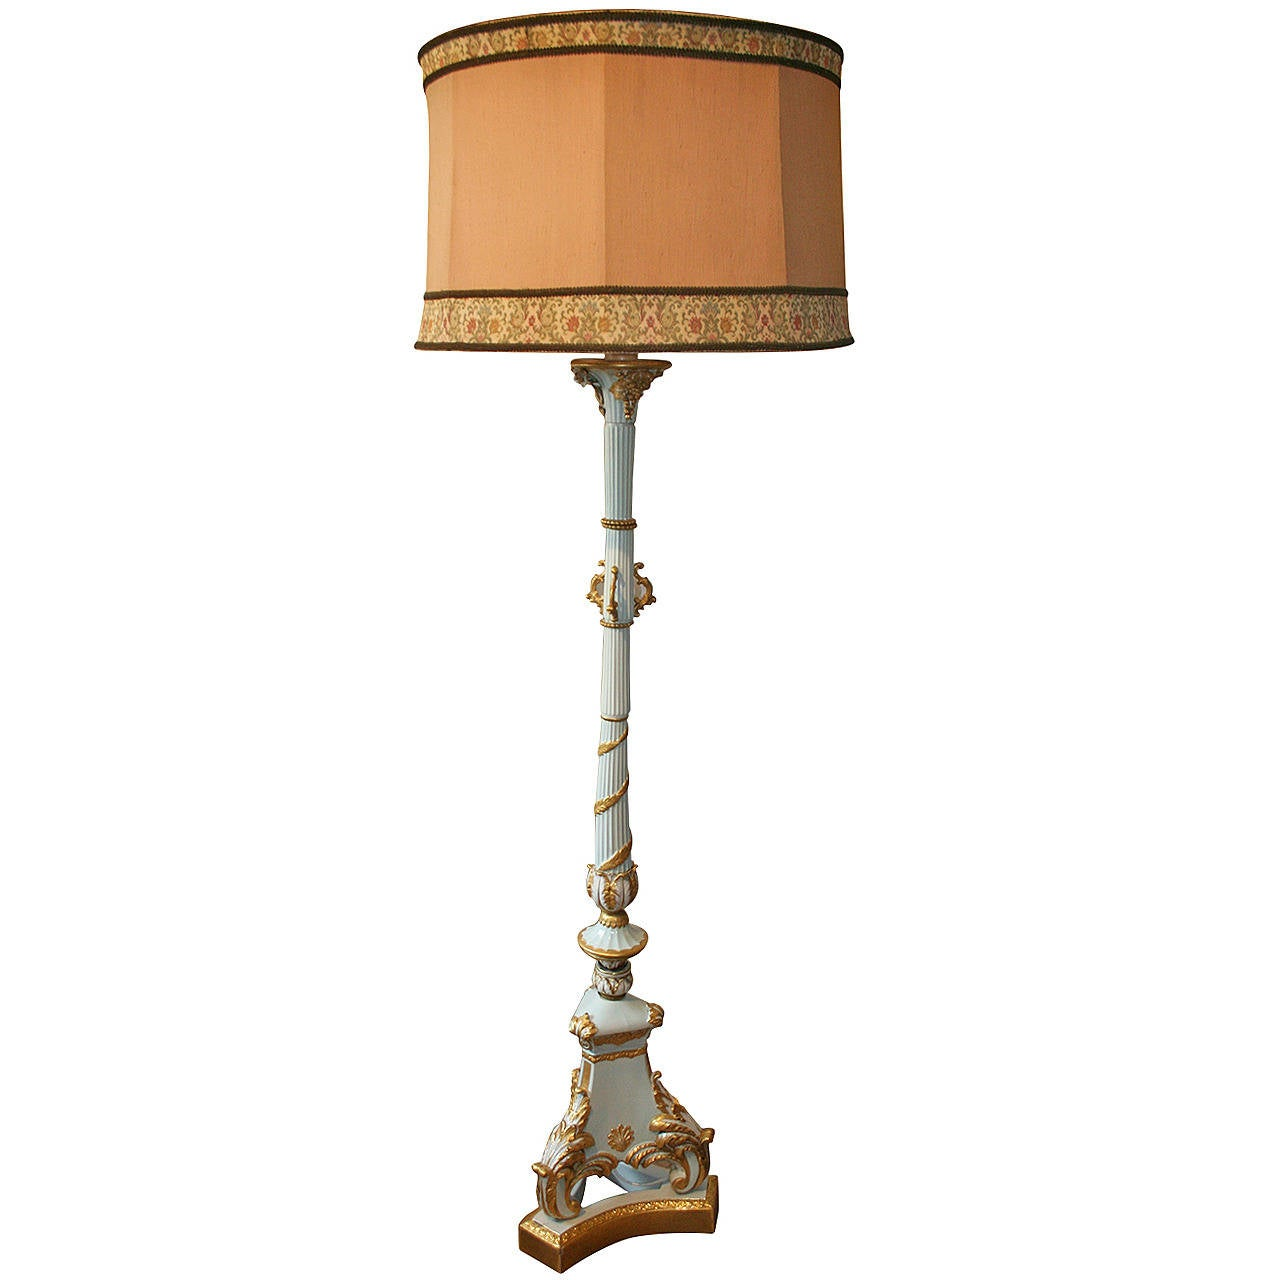 20th Century Limoges Lamp Golden And Light Blue At 1stdibs